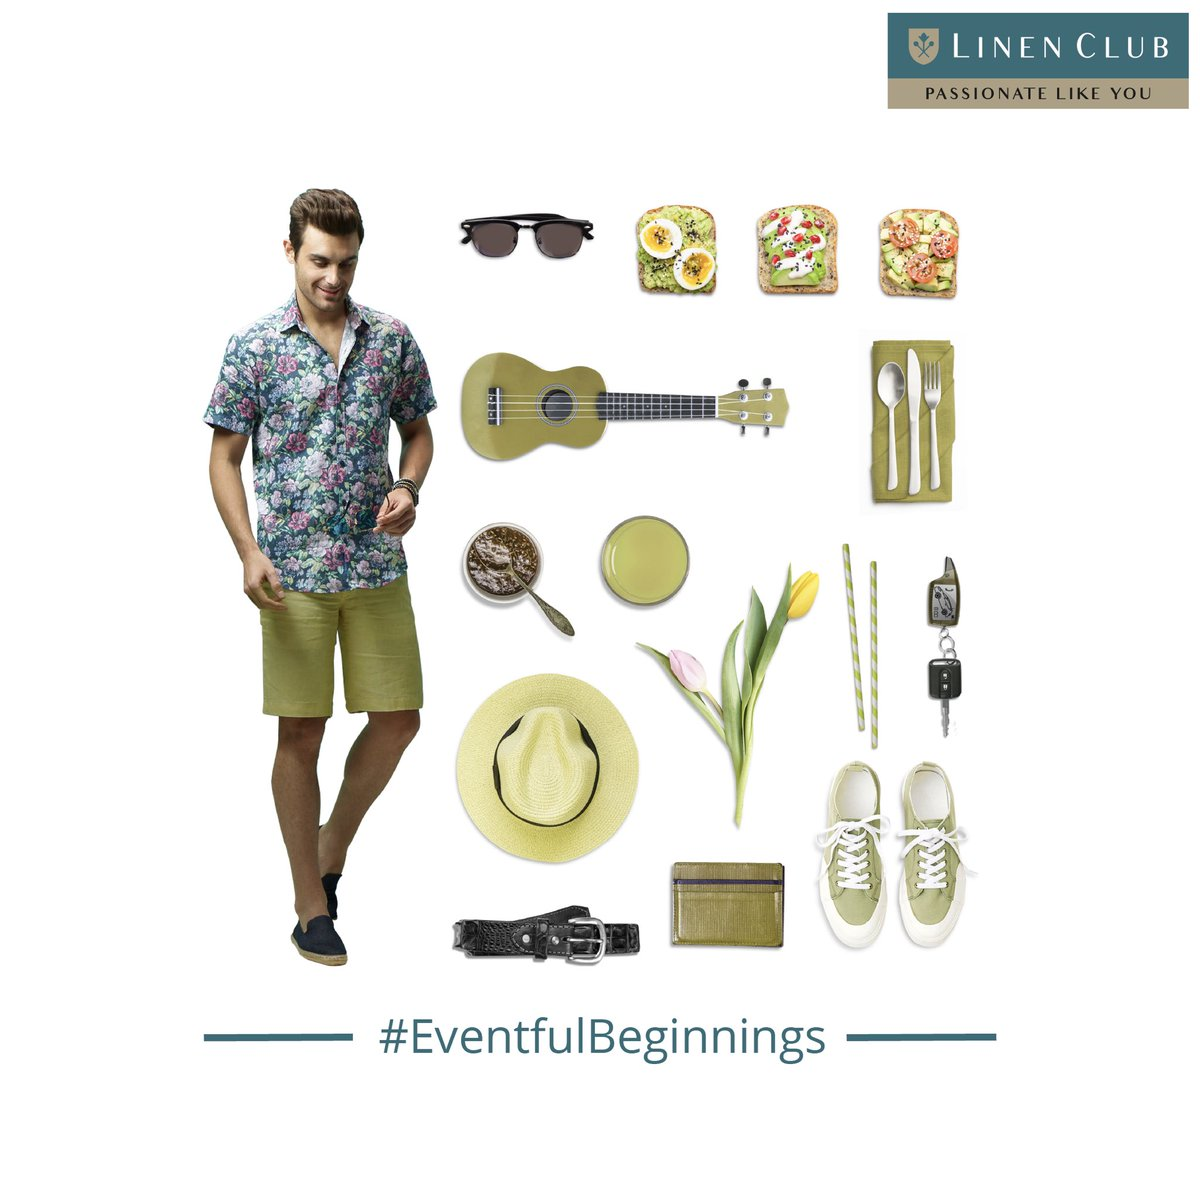 Make a start at a beautiful brunch to set the mood with a relaxed shirt paired with classy linen shorts from Linen Club. Find the Linen Club Store near you at   #EventfulBeginnings #Freshstart  #GoodStart #2021 #Newyear #LinenLifestyle #LinenClub